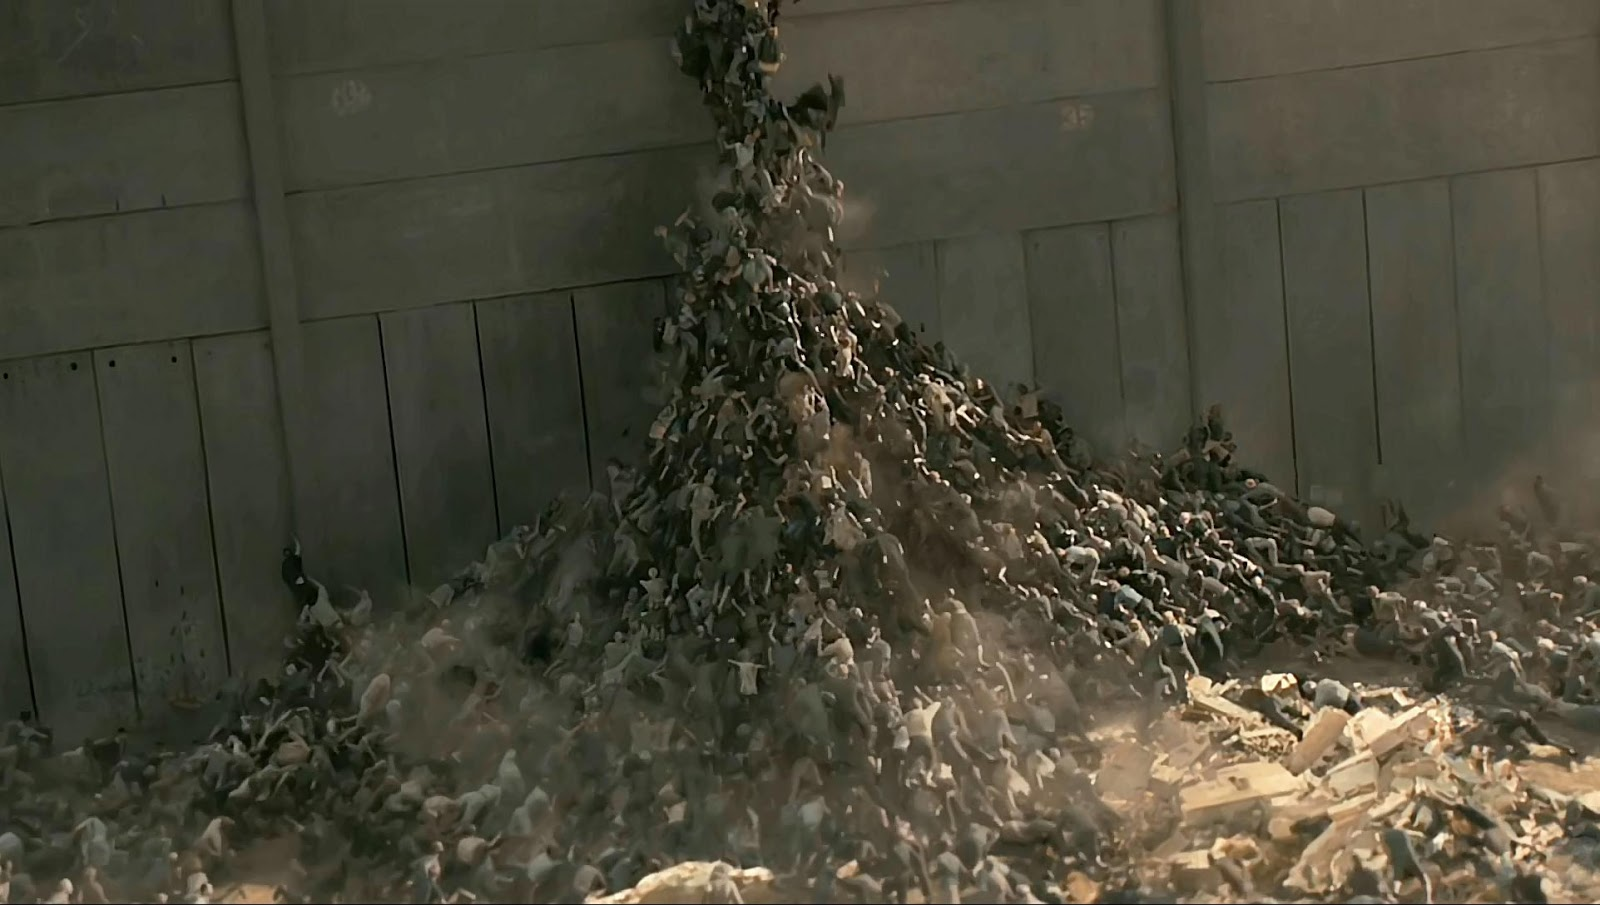 Zombies scales the walls of Jerusalem in World War Z (2013